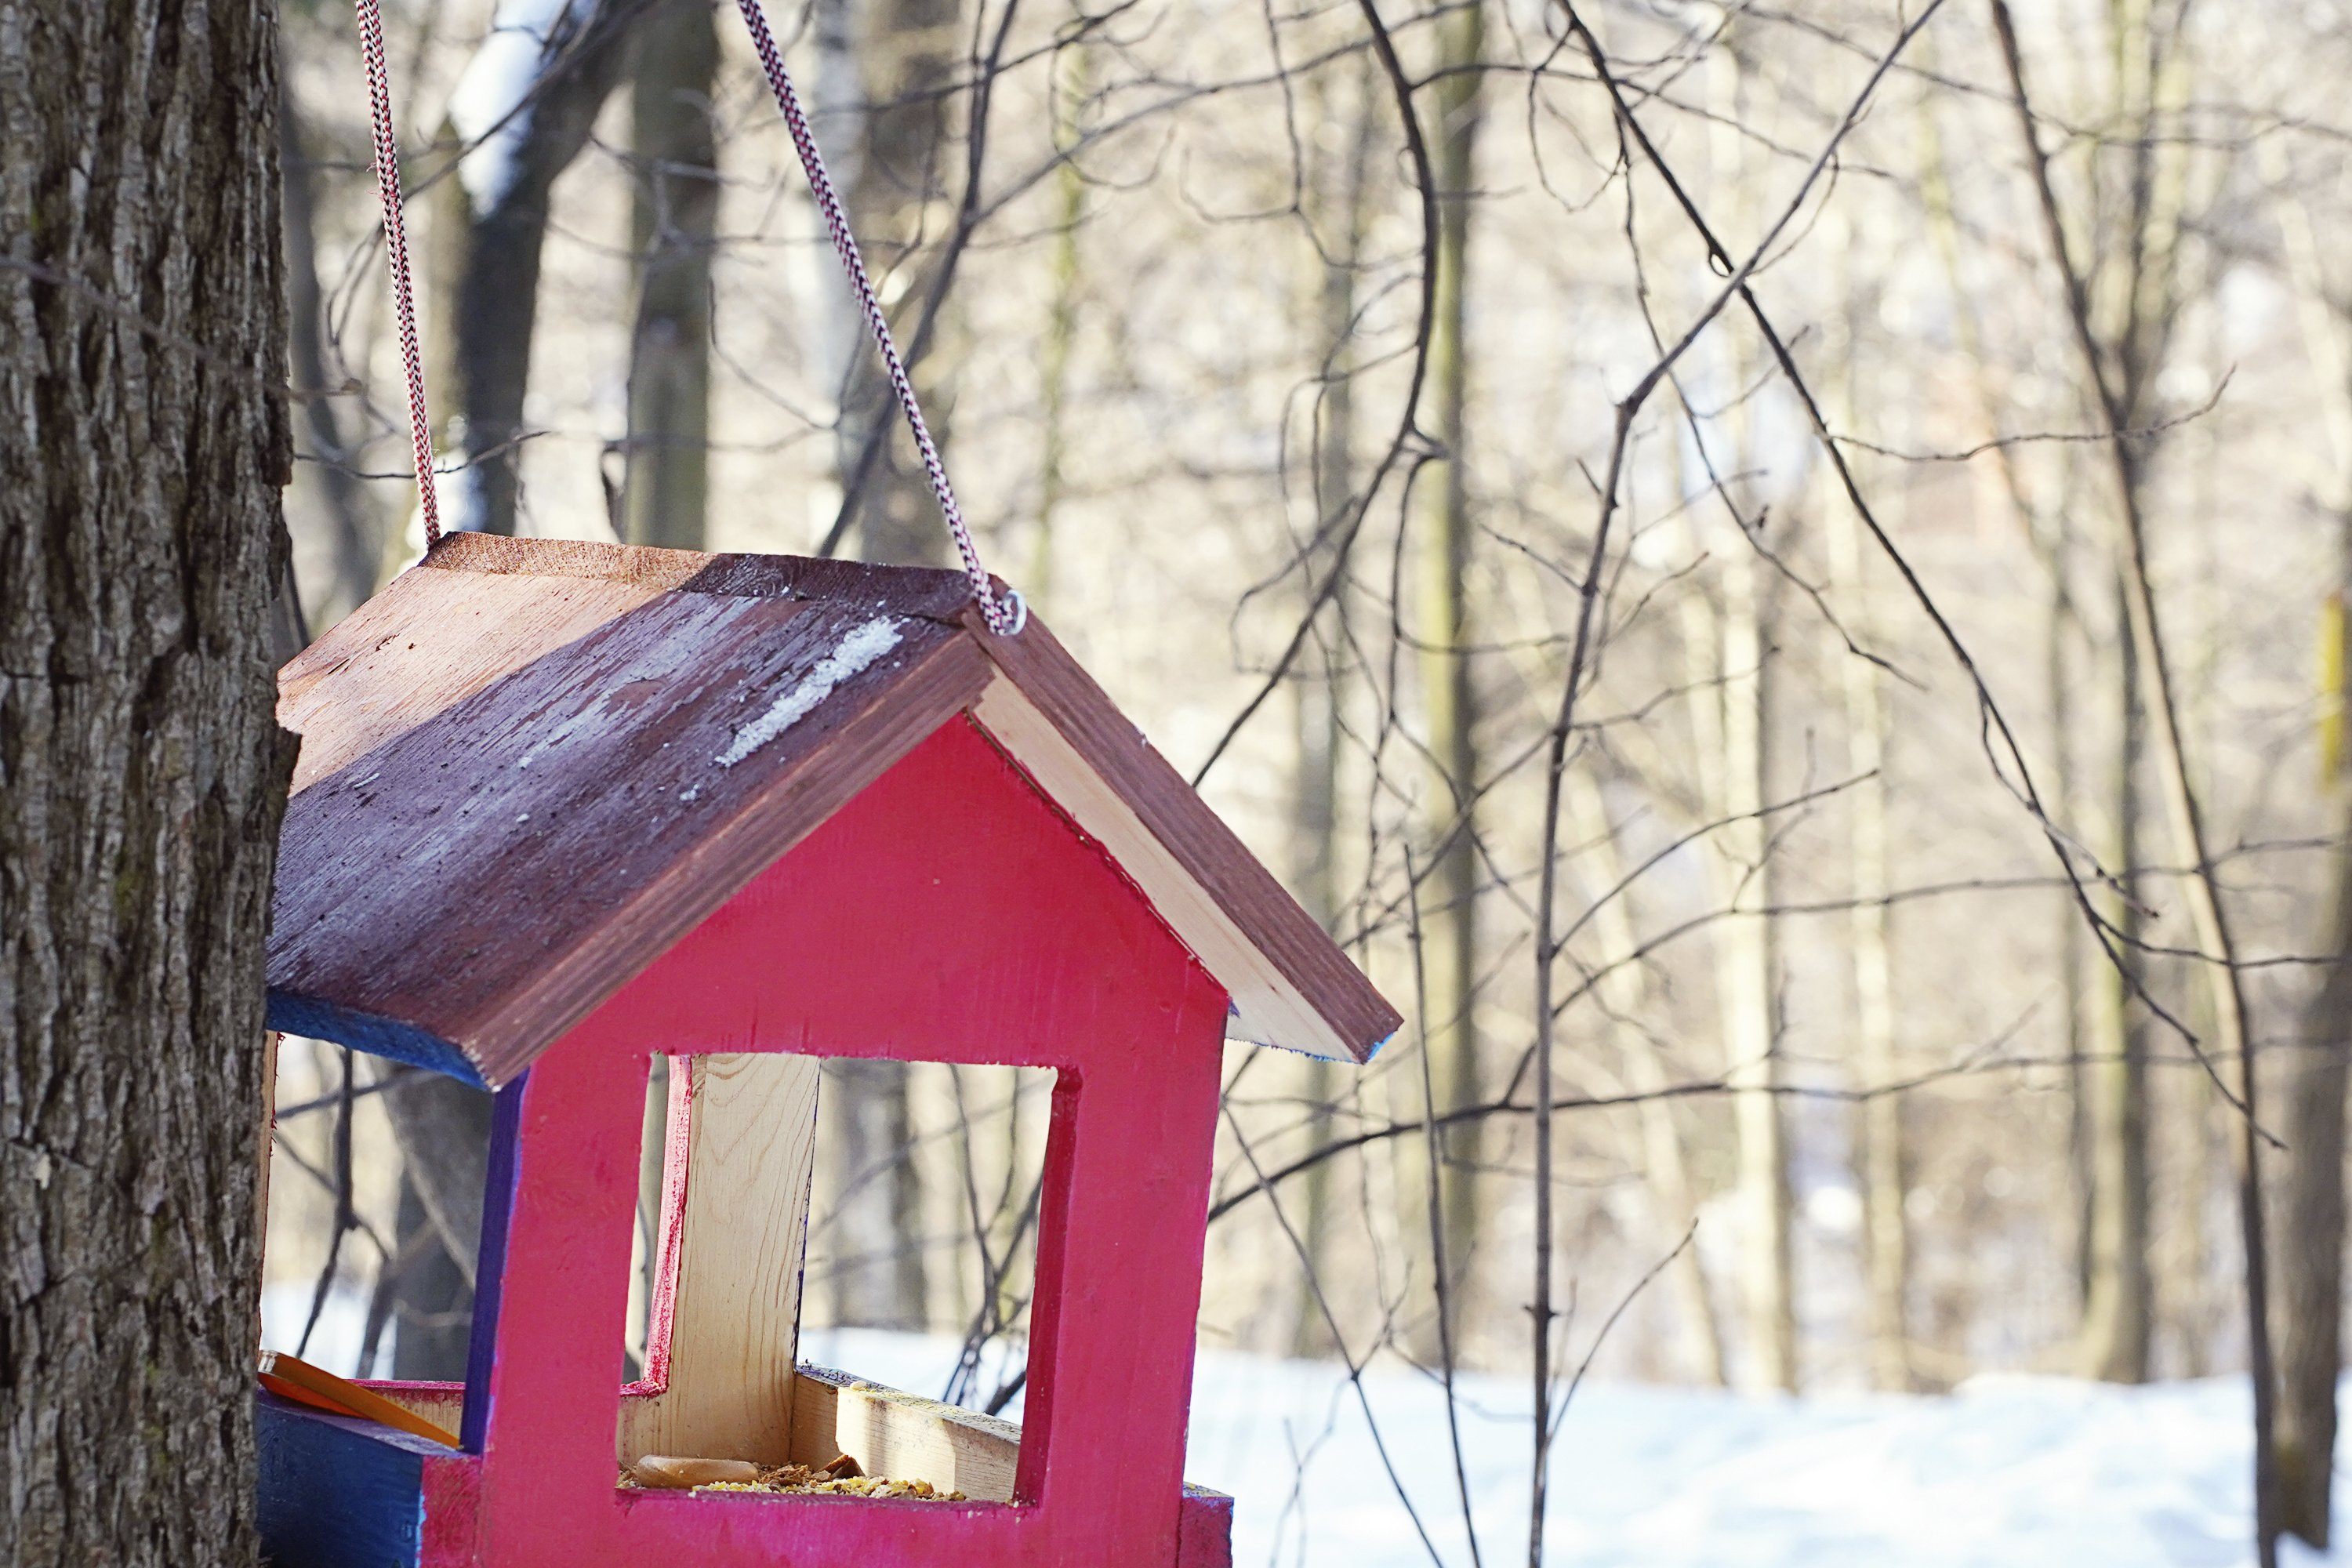 Bird feeder hanging from a tree. Red birdhouse during winter example image 1